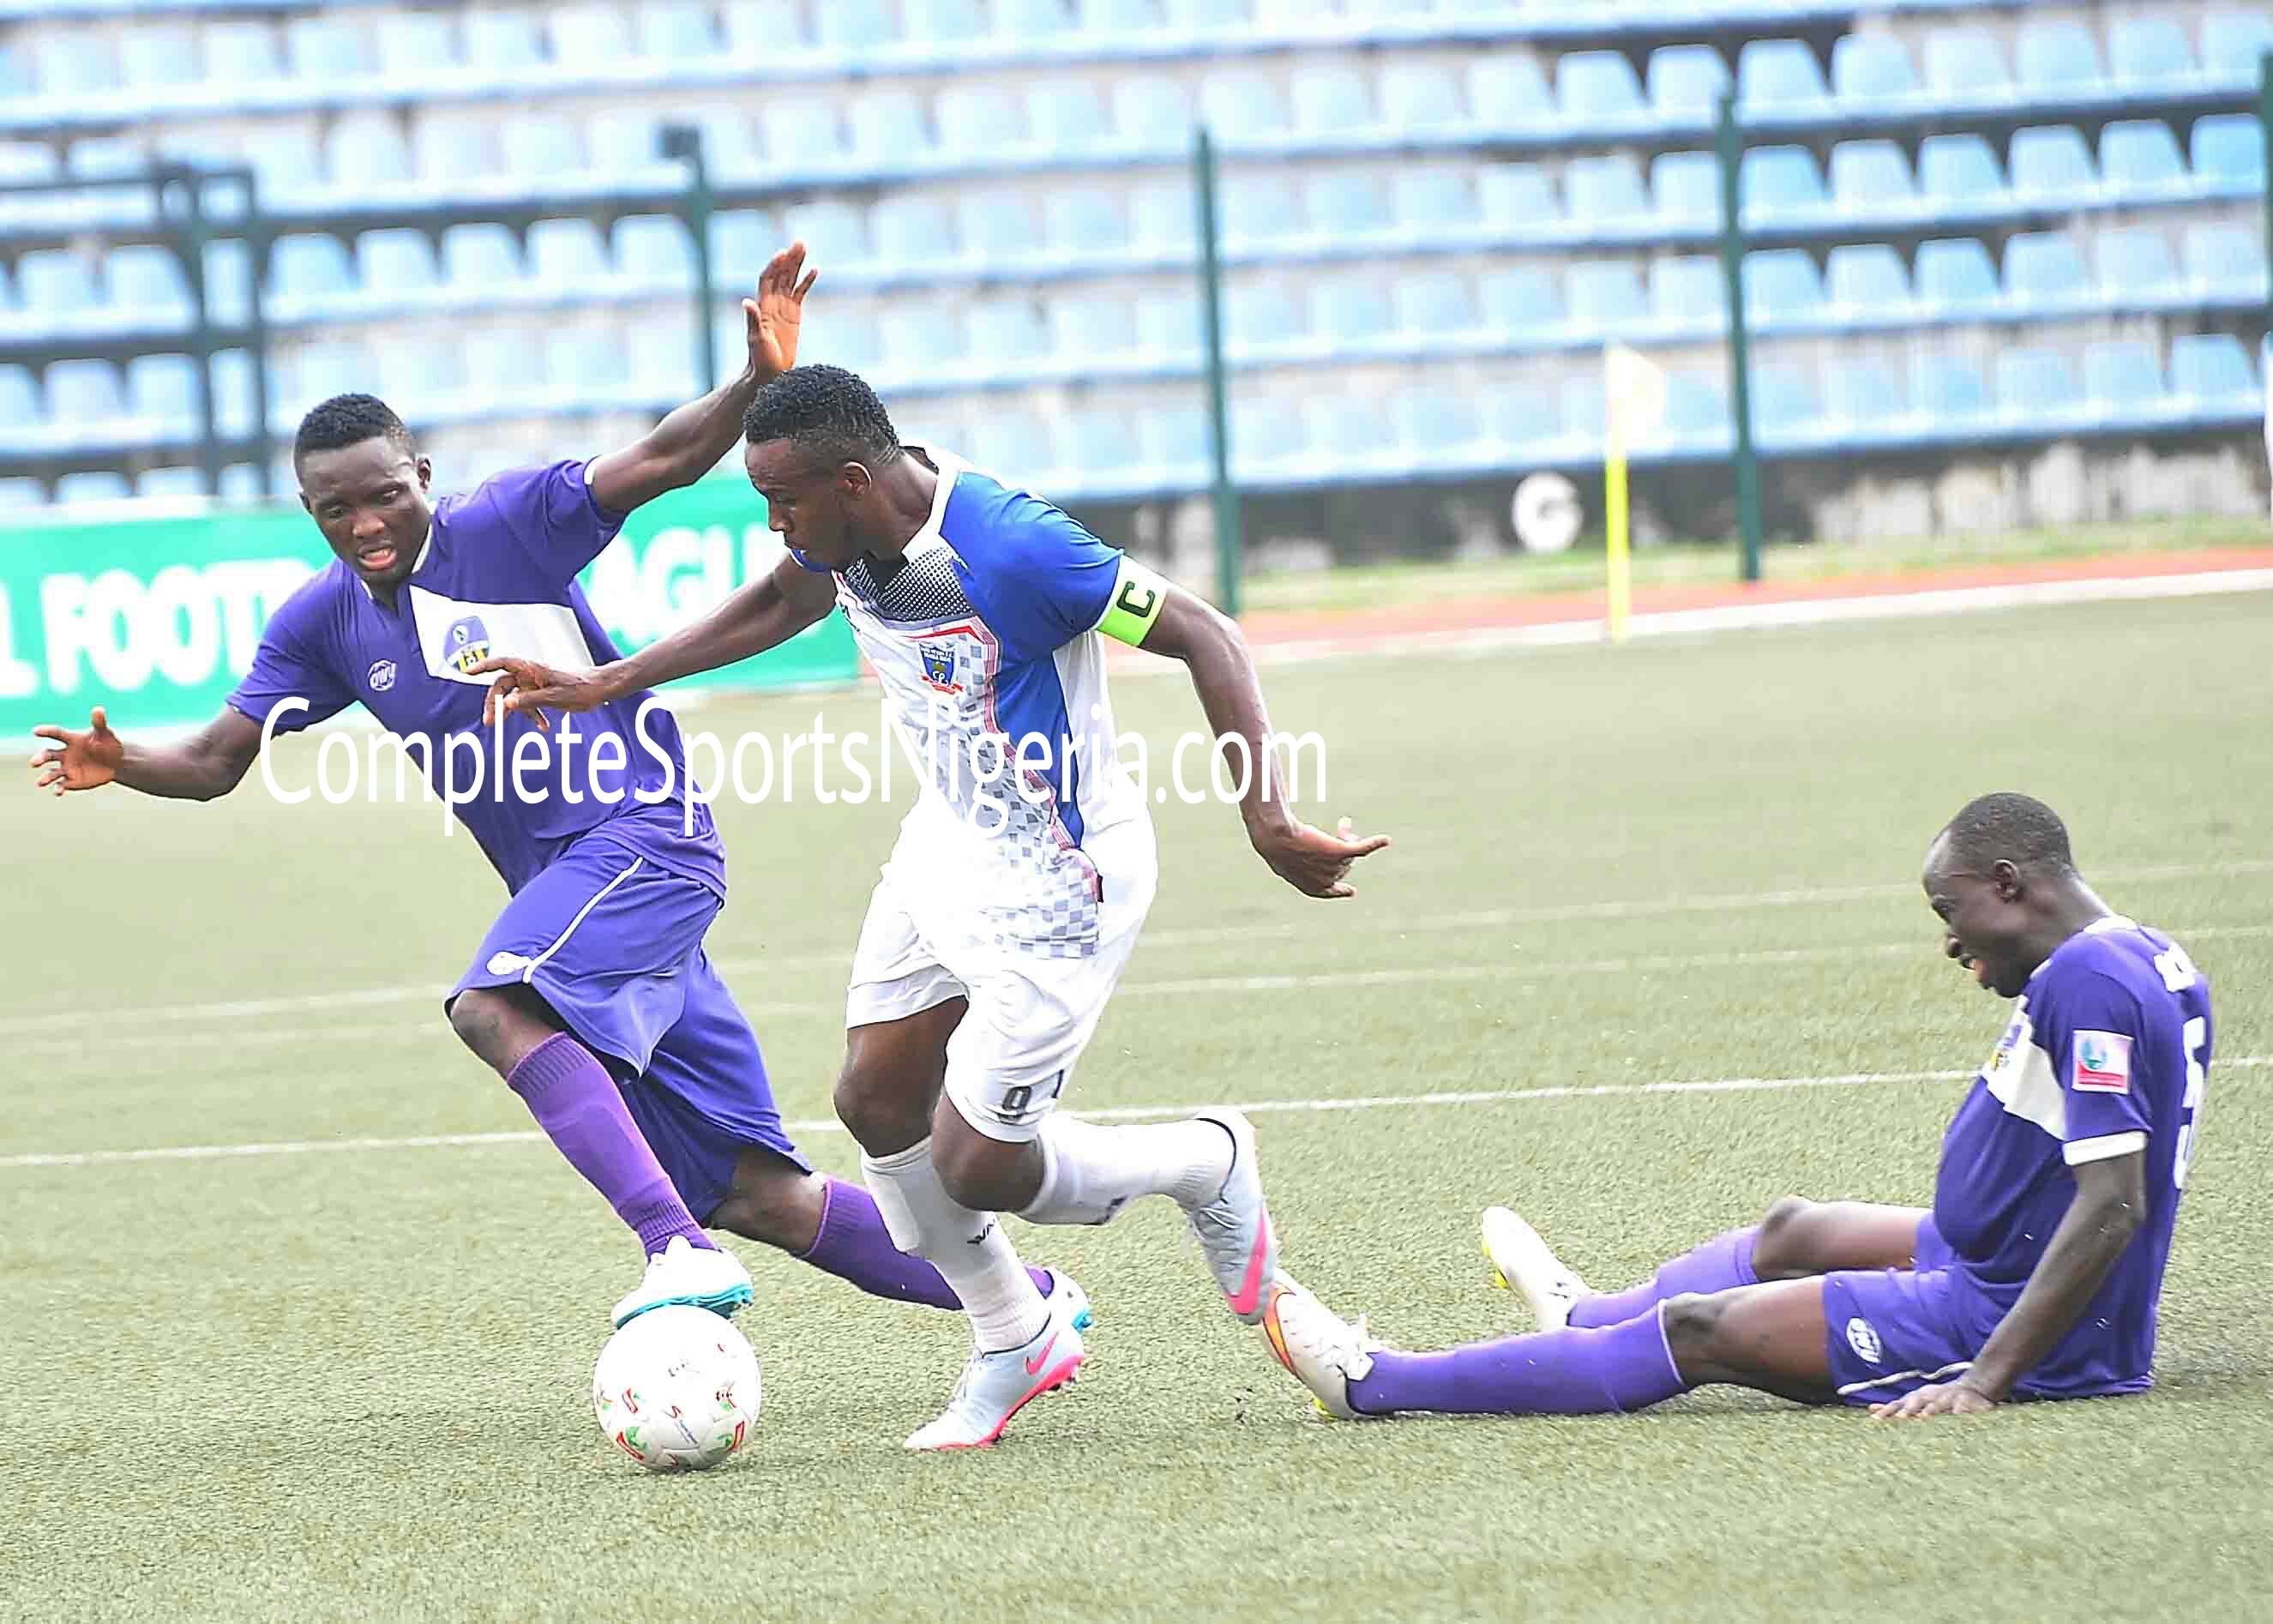 NPFL: MFM Ease Past Lobi, Revive Survival Hopes